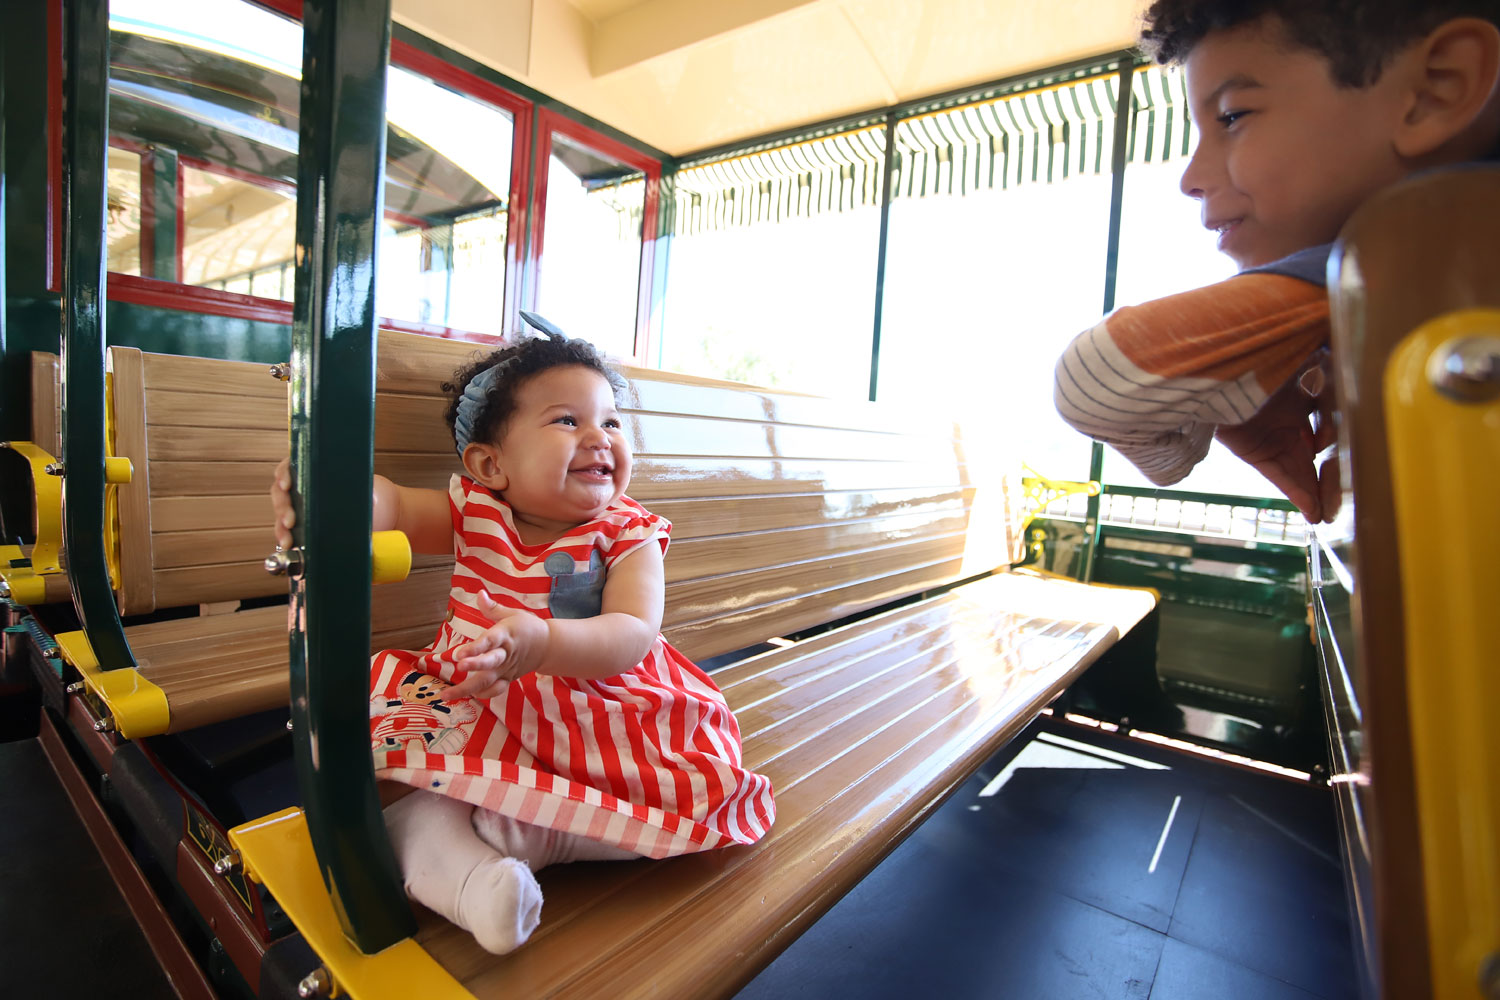 A baby girl playing with her big brother on a train.